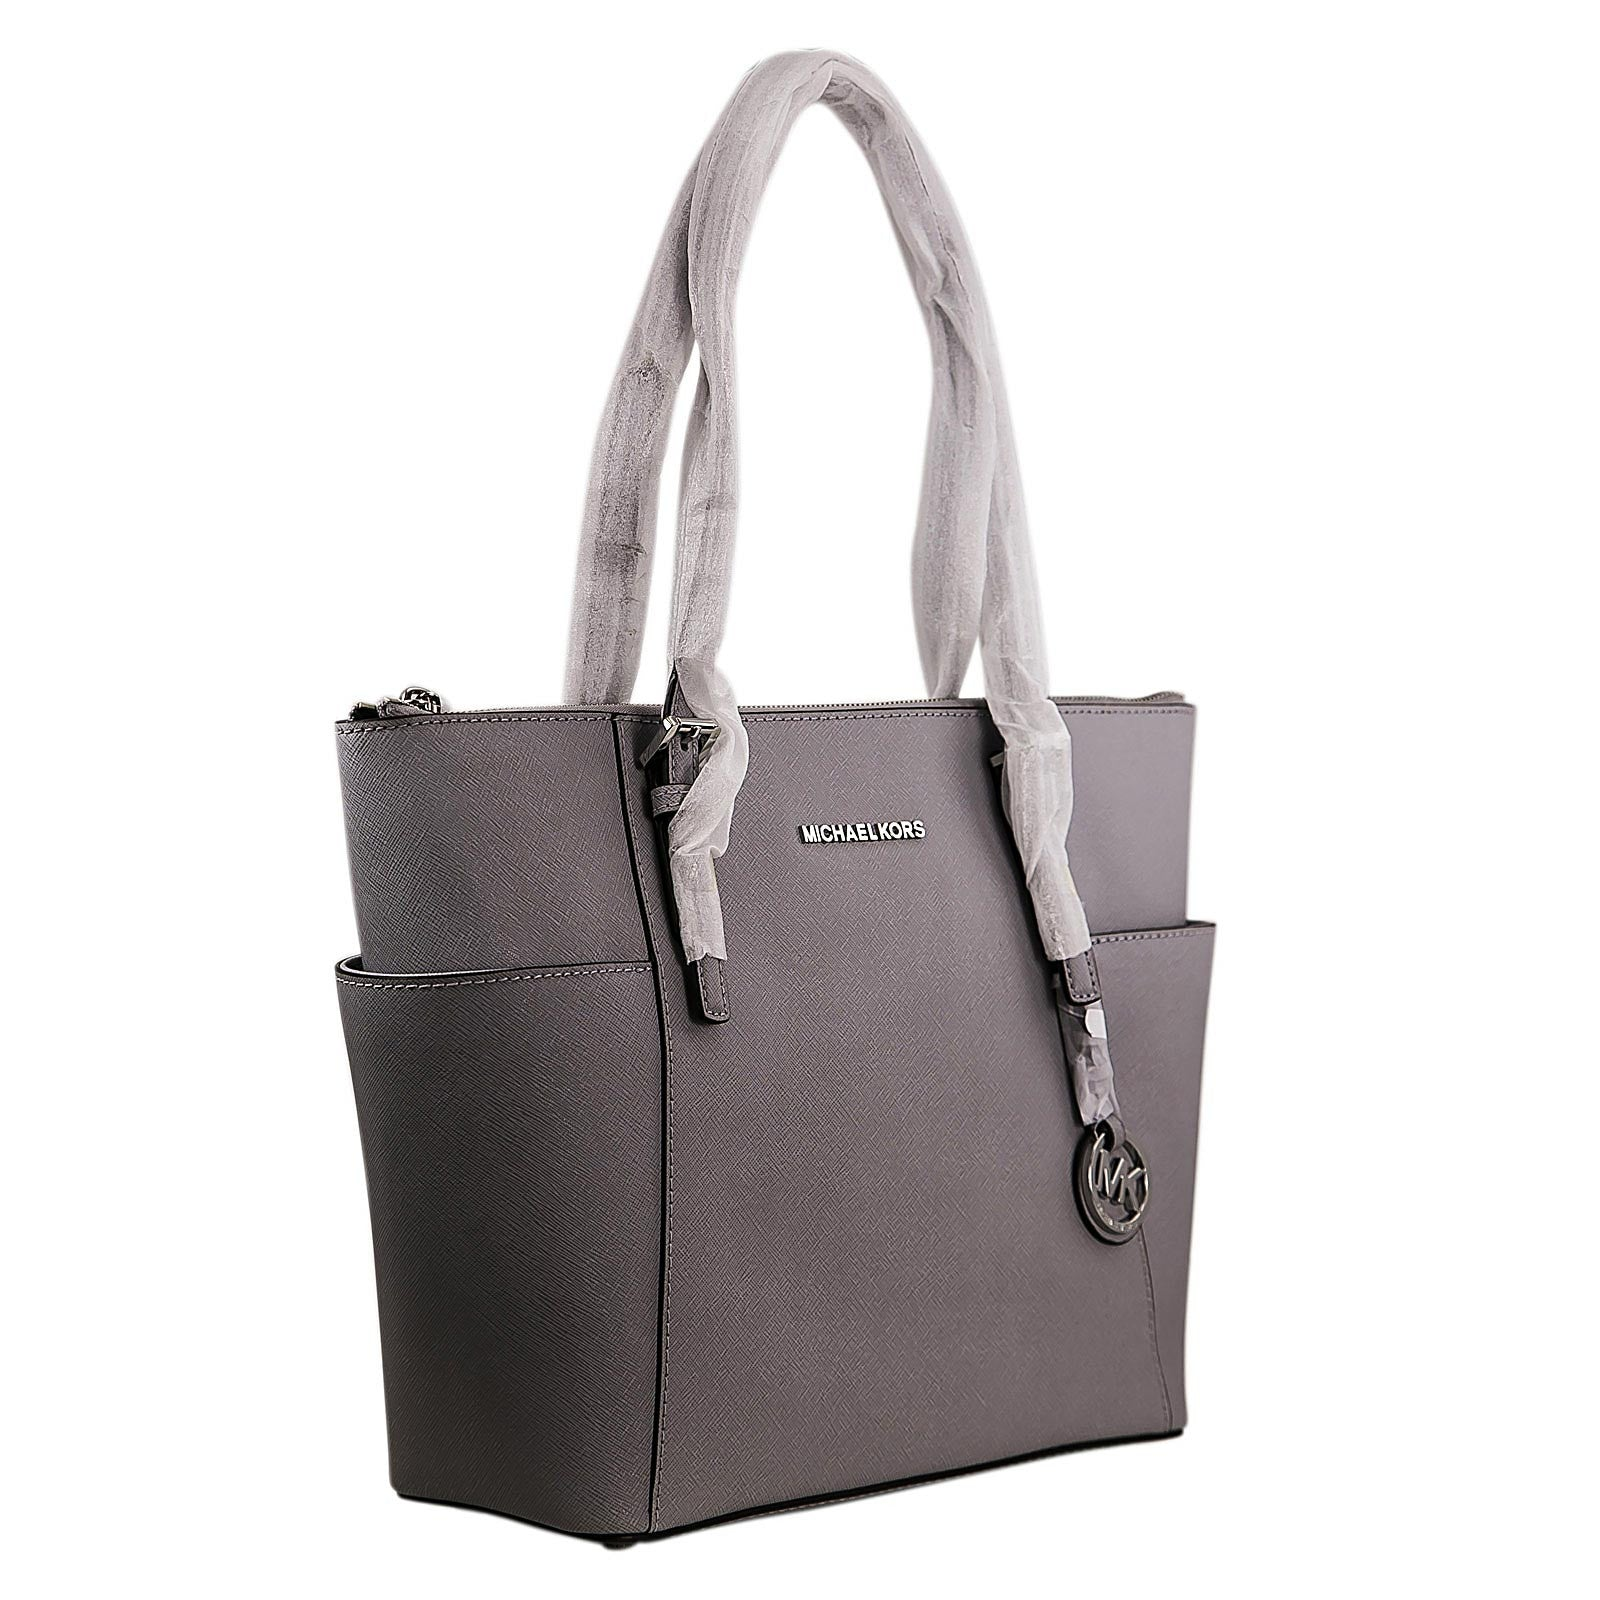 Michael Kors 30F2STTT8L-083 Women's Jet Set Top-Zip Dove Saffiano Leather Medium Tote